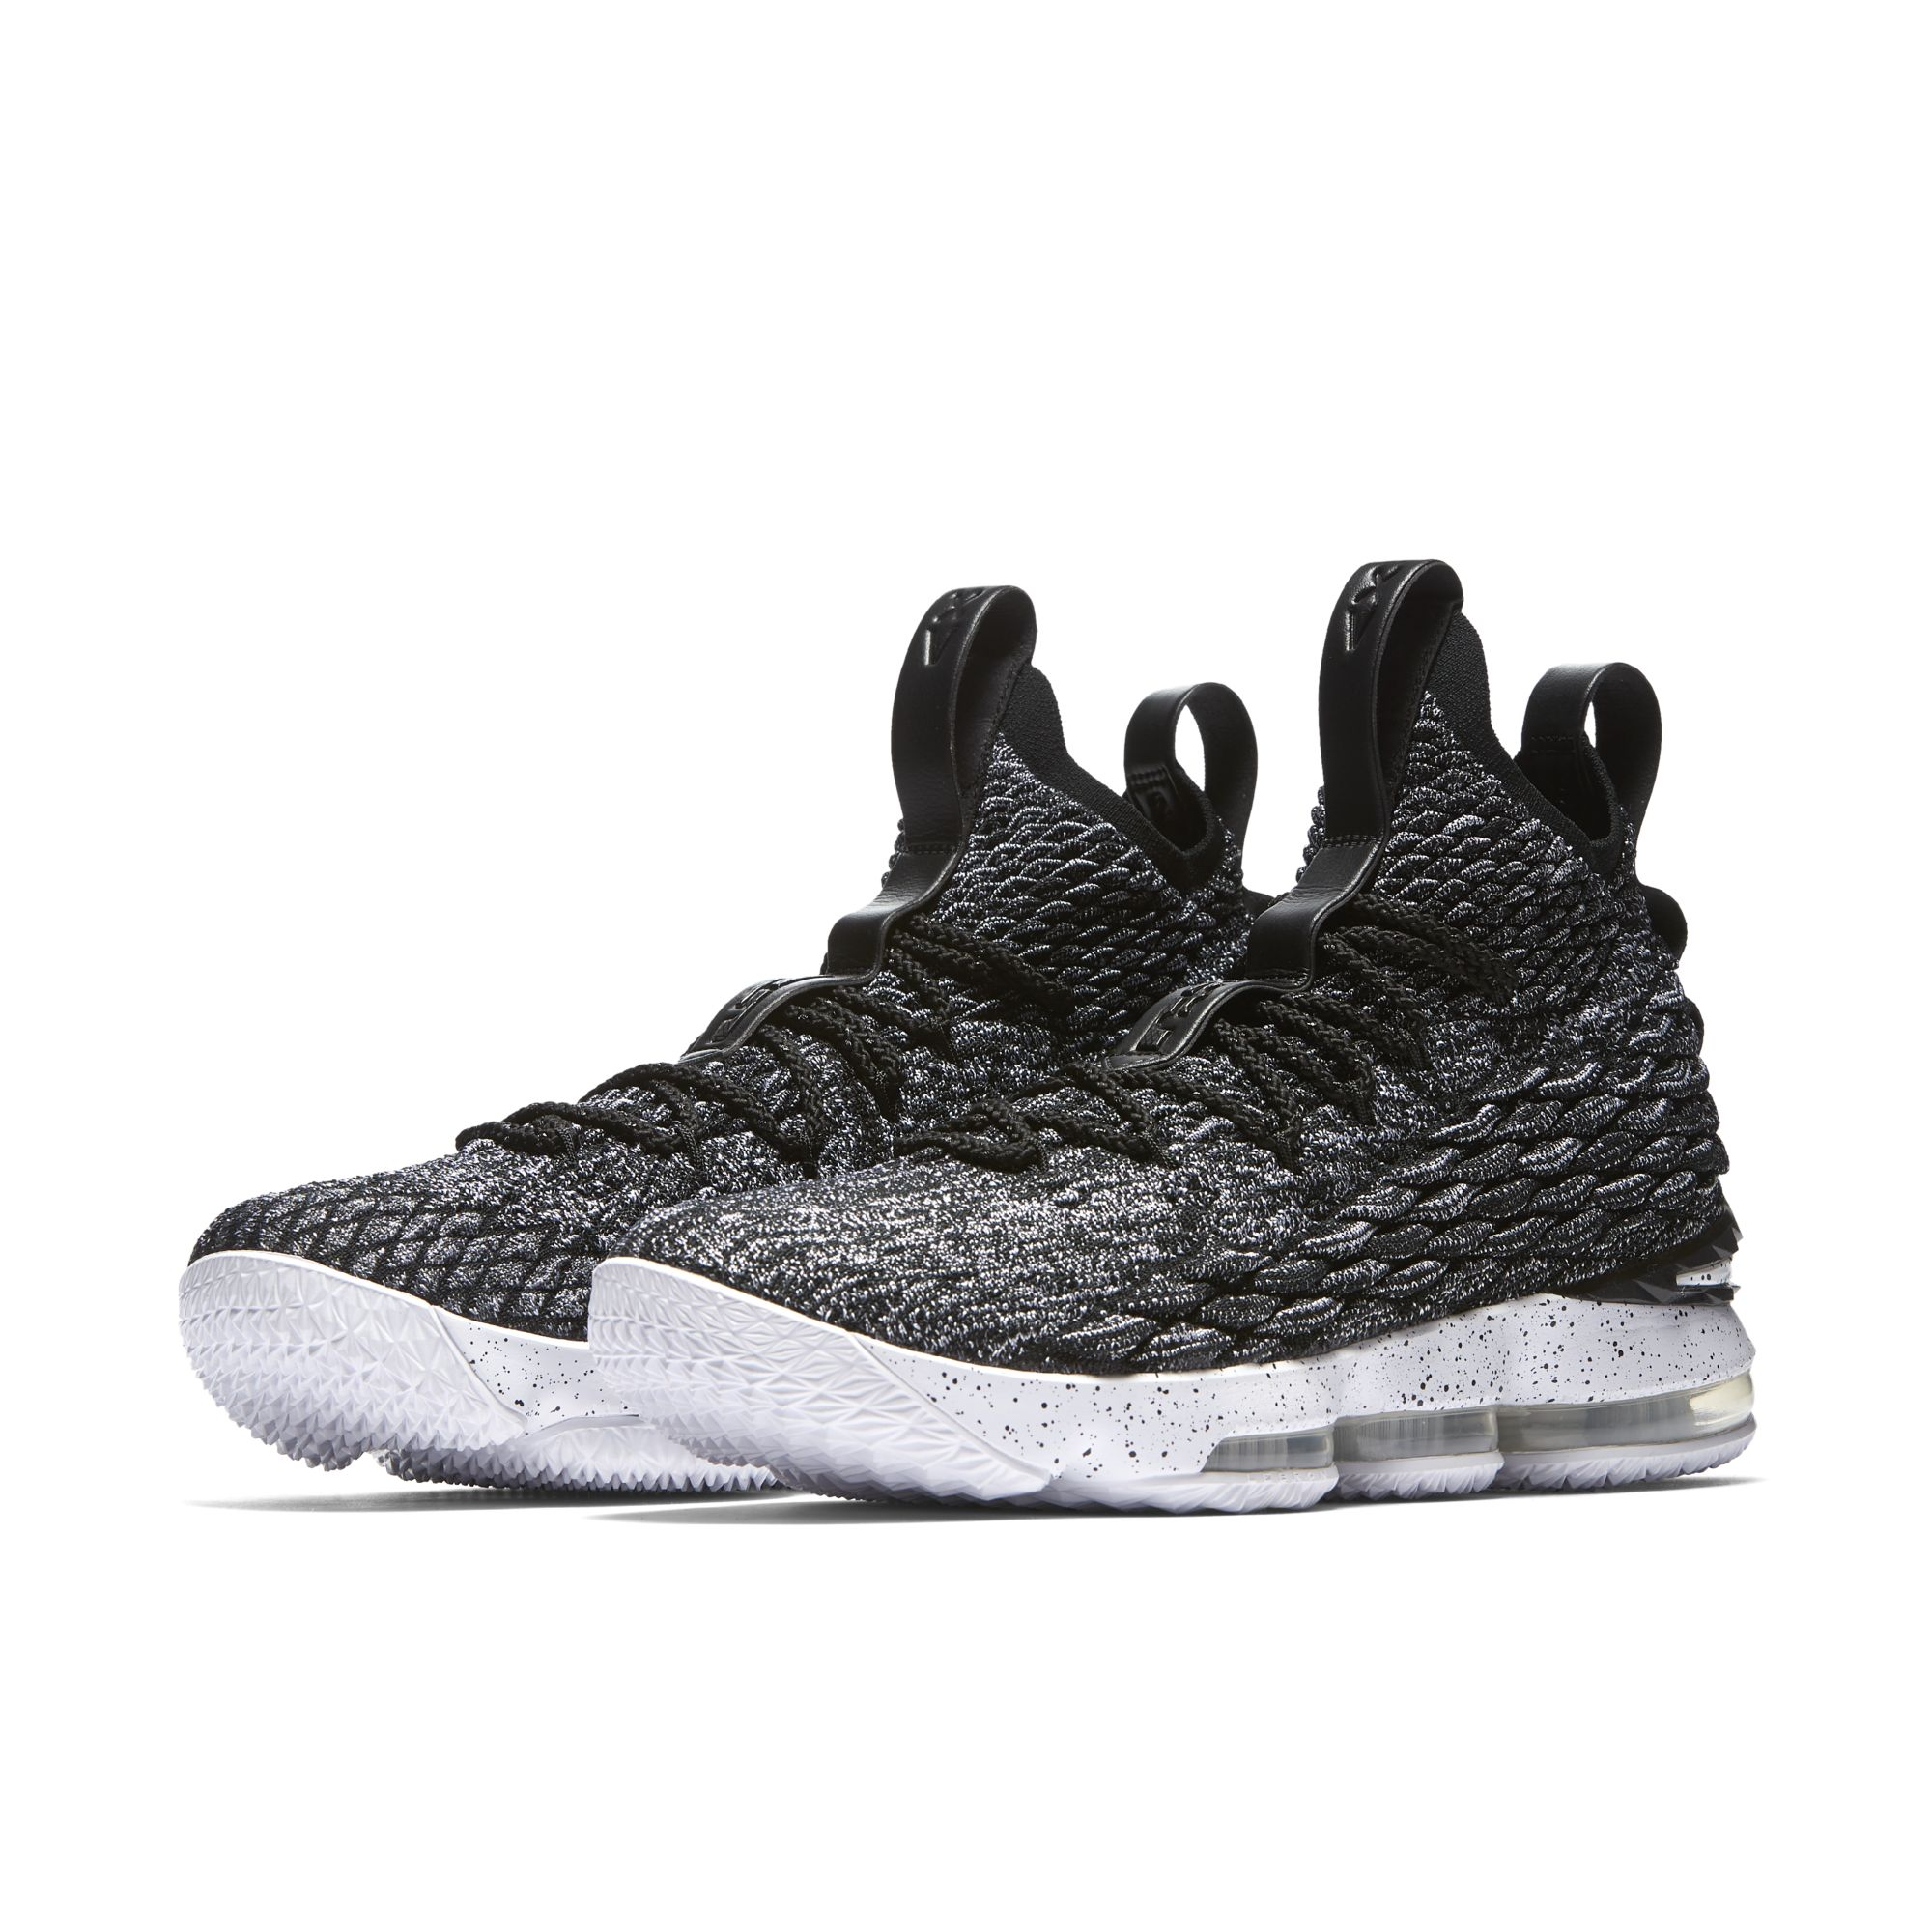 hot sale online 37831 4f5ea Official Images of the Nike LeBron 15 'Ashes' - WearTesters